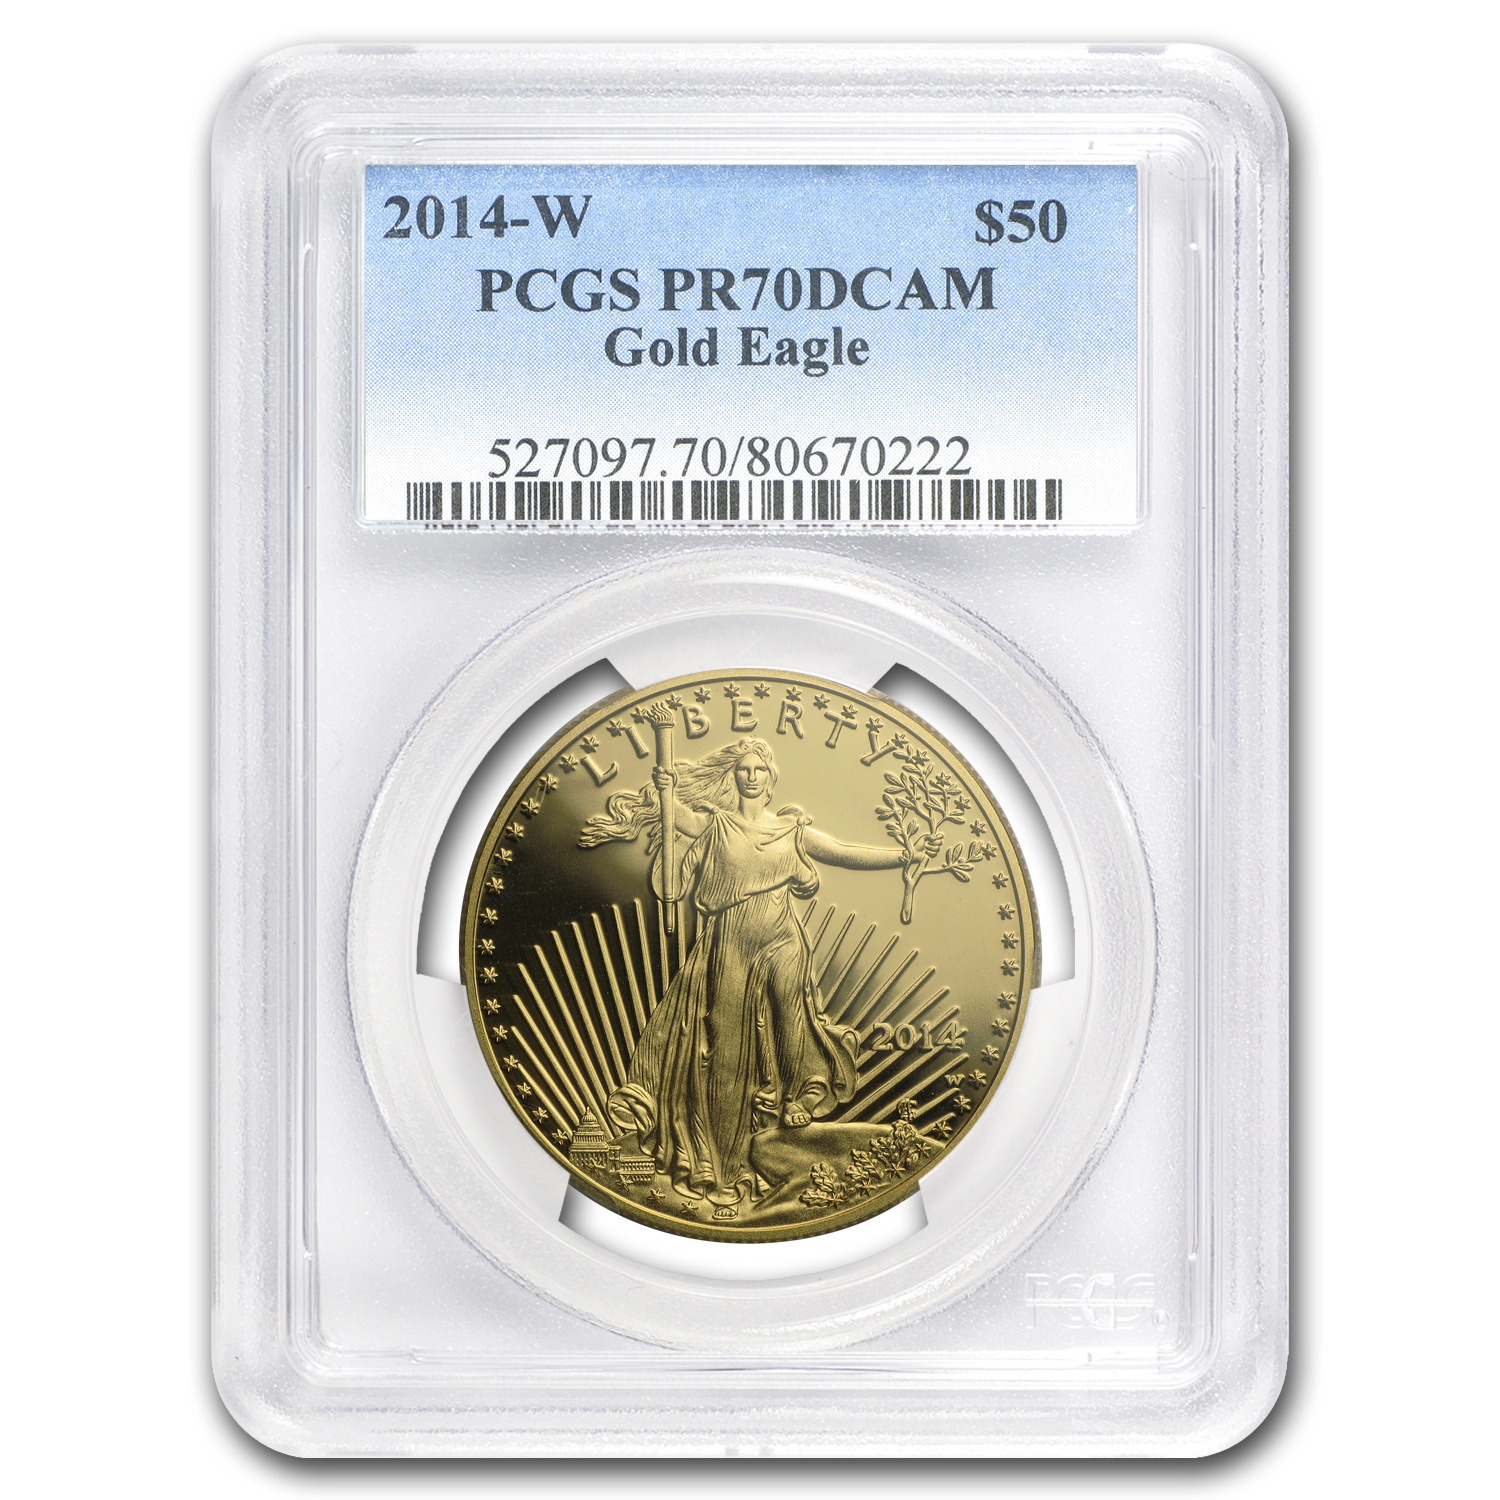 2014-W 1 oz Proof Gold American Eagle PR-70 PCGS